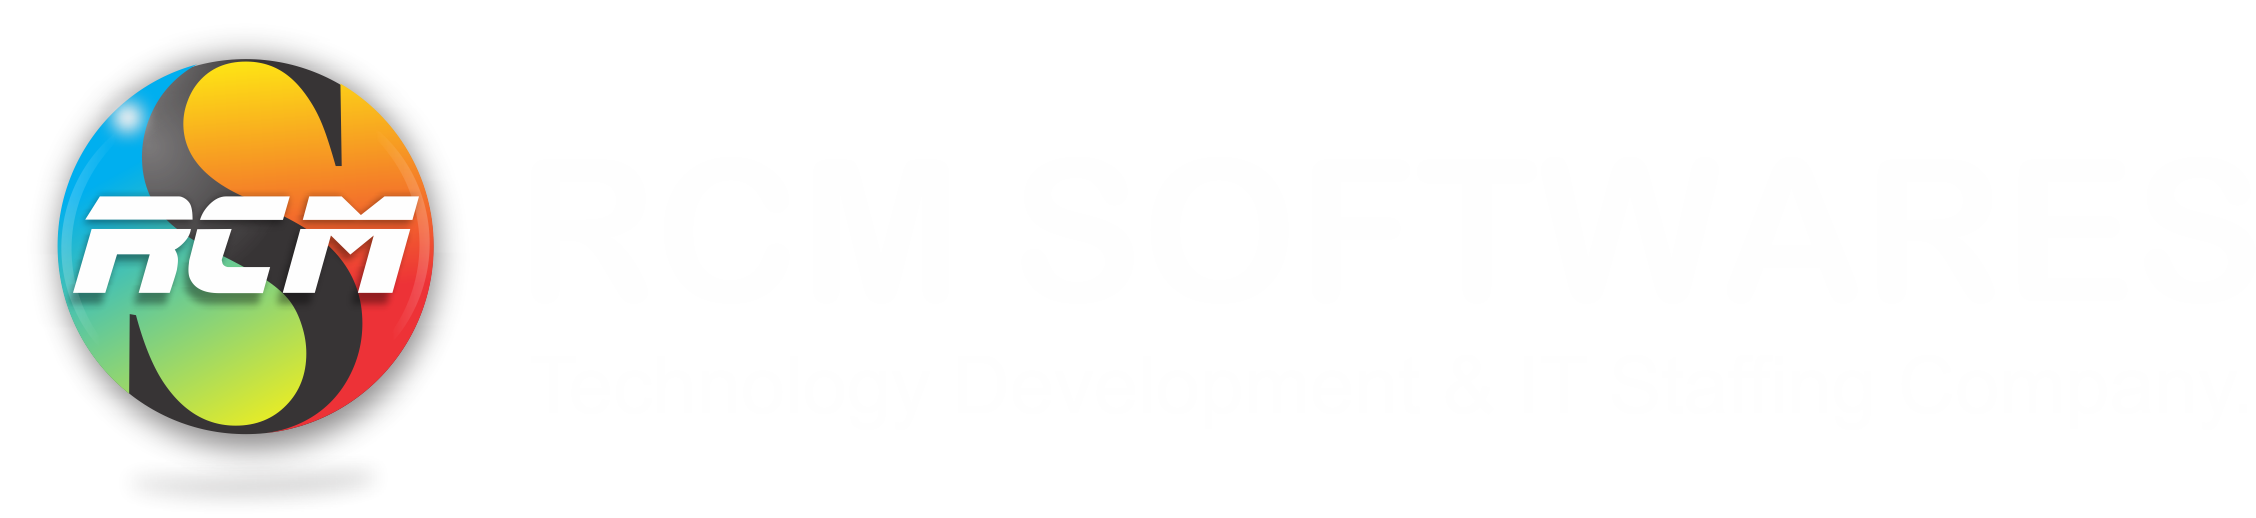 RCM SOFTWARES